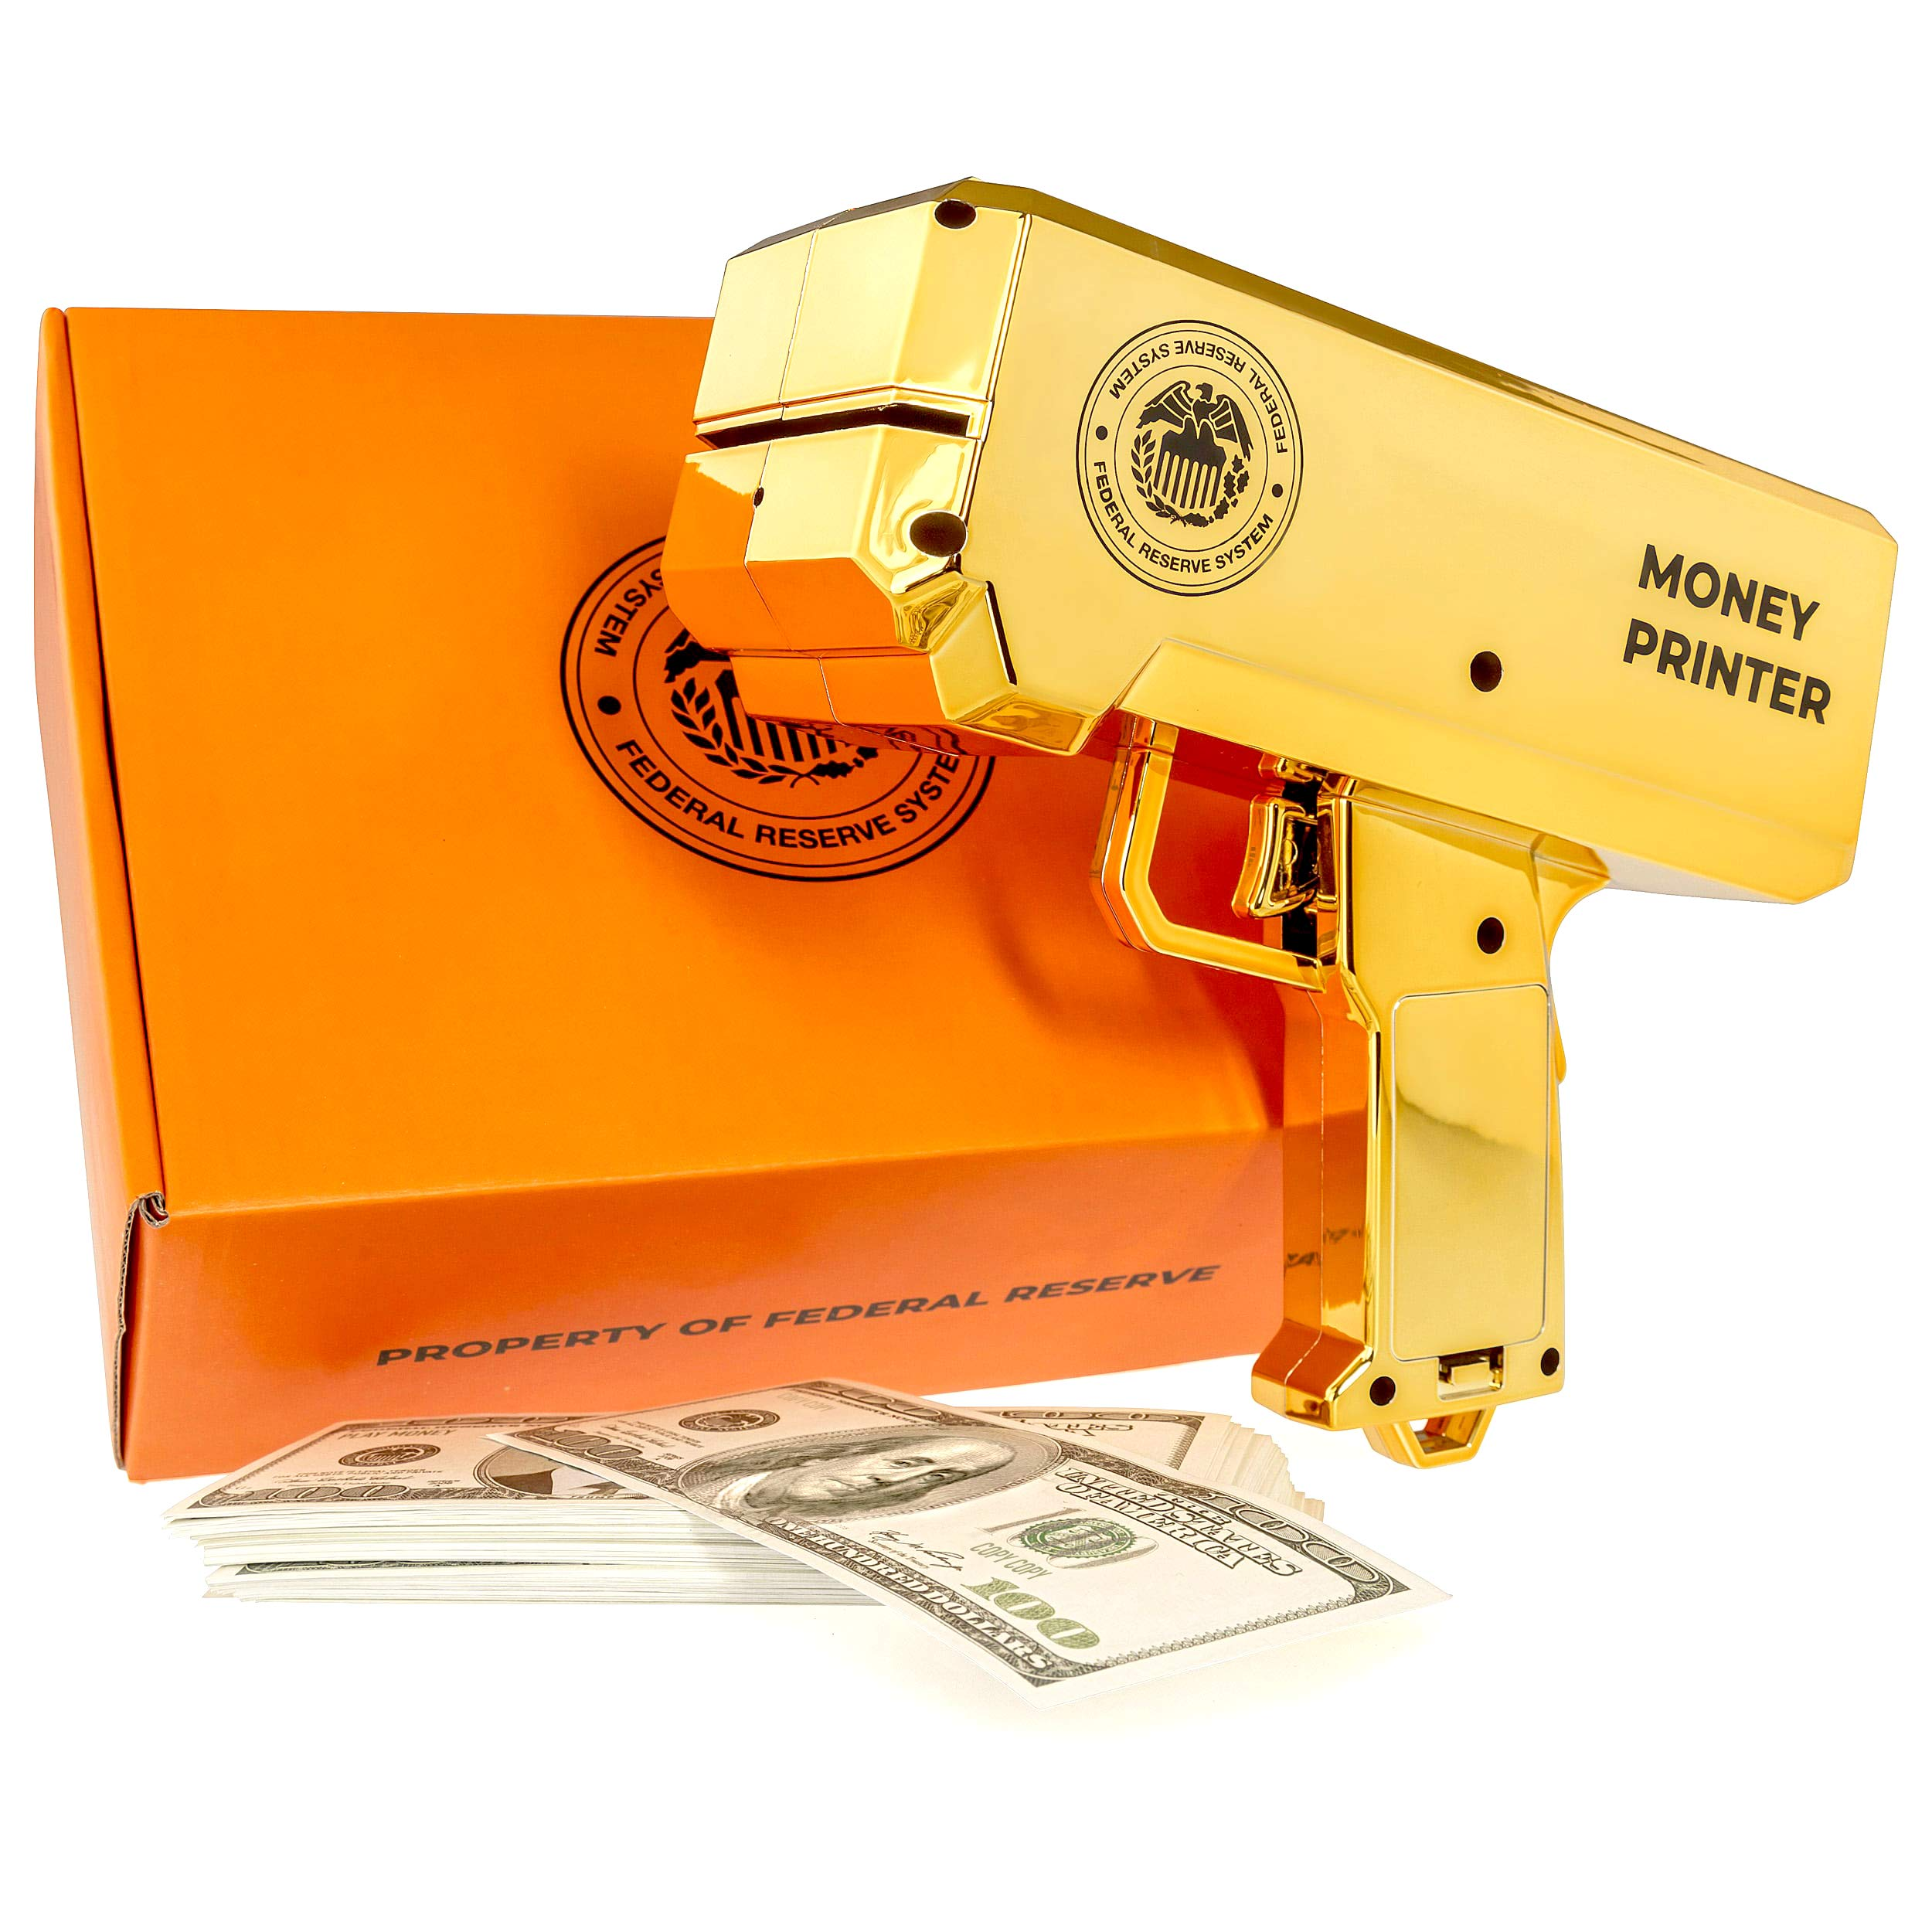 The Money Printer - Golden Money Gun Shooter with Fake Money ($10000 Play Money) - Gift Box Included - Bachelor Party Supplies, Bachelorette Party Games, Birthday Party, Prank Stuff by The Money Printer